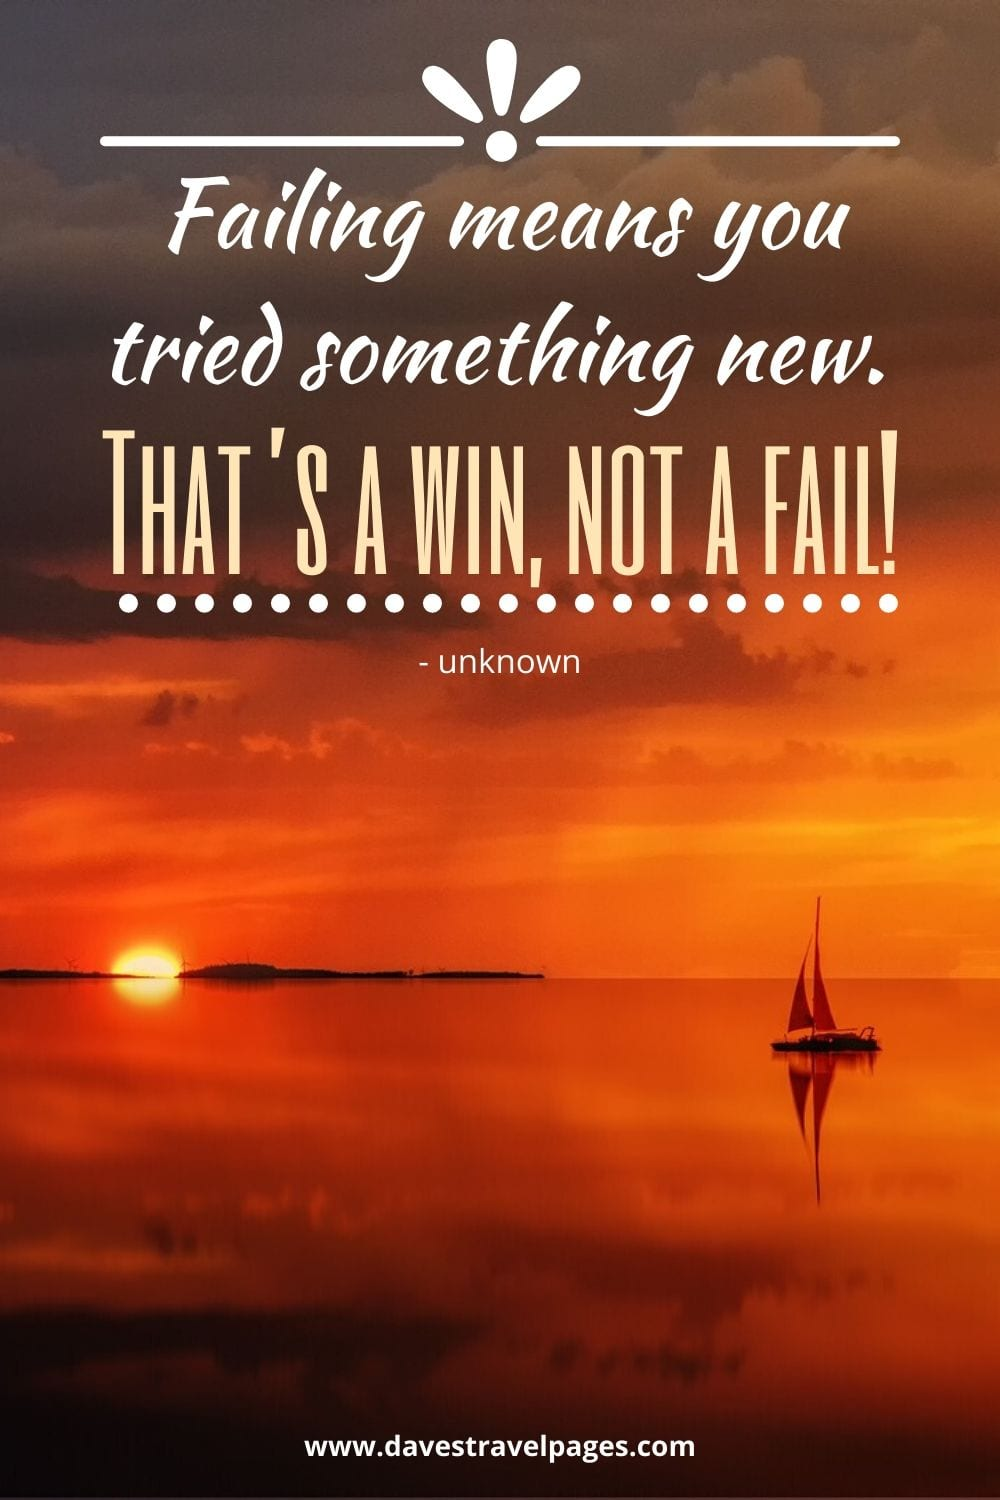 Inspiring Quotes: Failing means you tried something new. That's a win, not a fail!